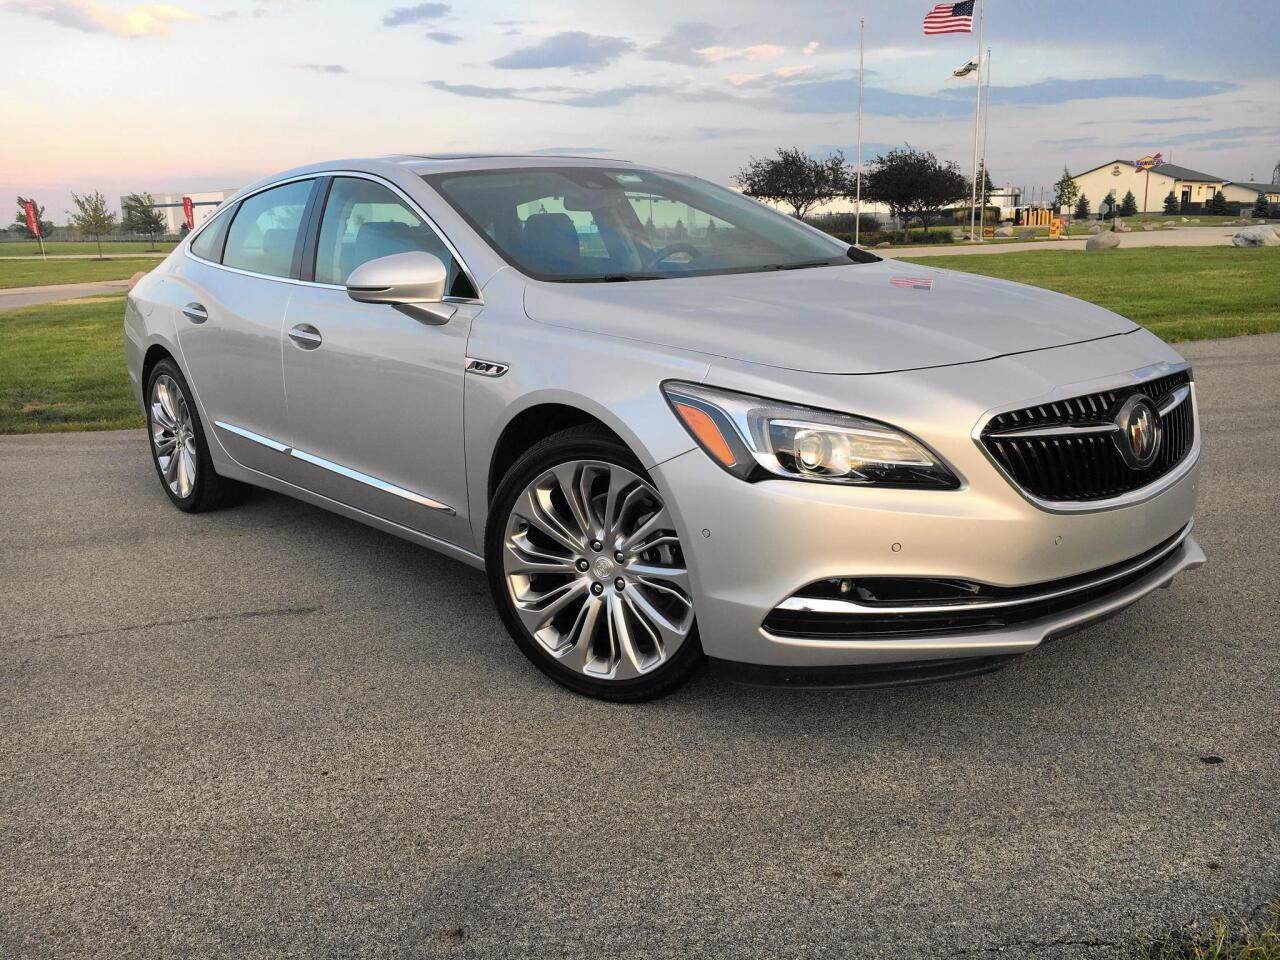 Redesigned for 2017, the third generation Buick LaCrosse in Premium trim and quicksilver metallic paint is a full-size sedan that will cease production March 1, 2019 out of GM's Detroit/Hamtramck factory, pending negotiations with United Auto Workers union. Pictured August 1, 2017 at Autobahn Country Club in Joliet, Ill. Read the review>>>